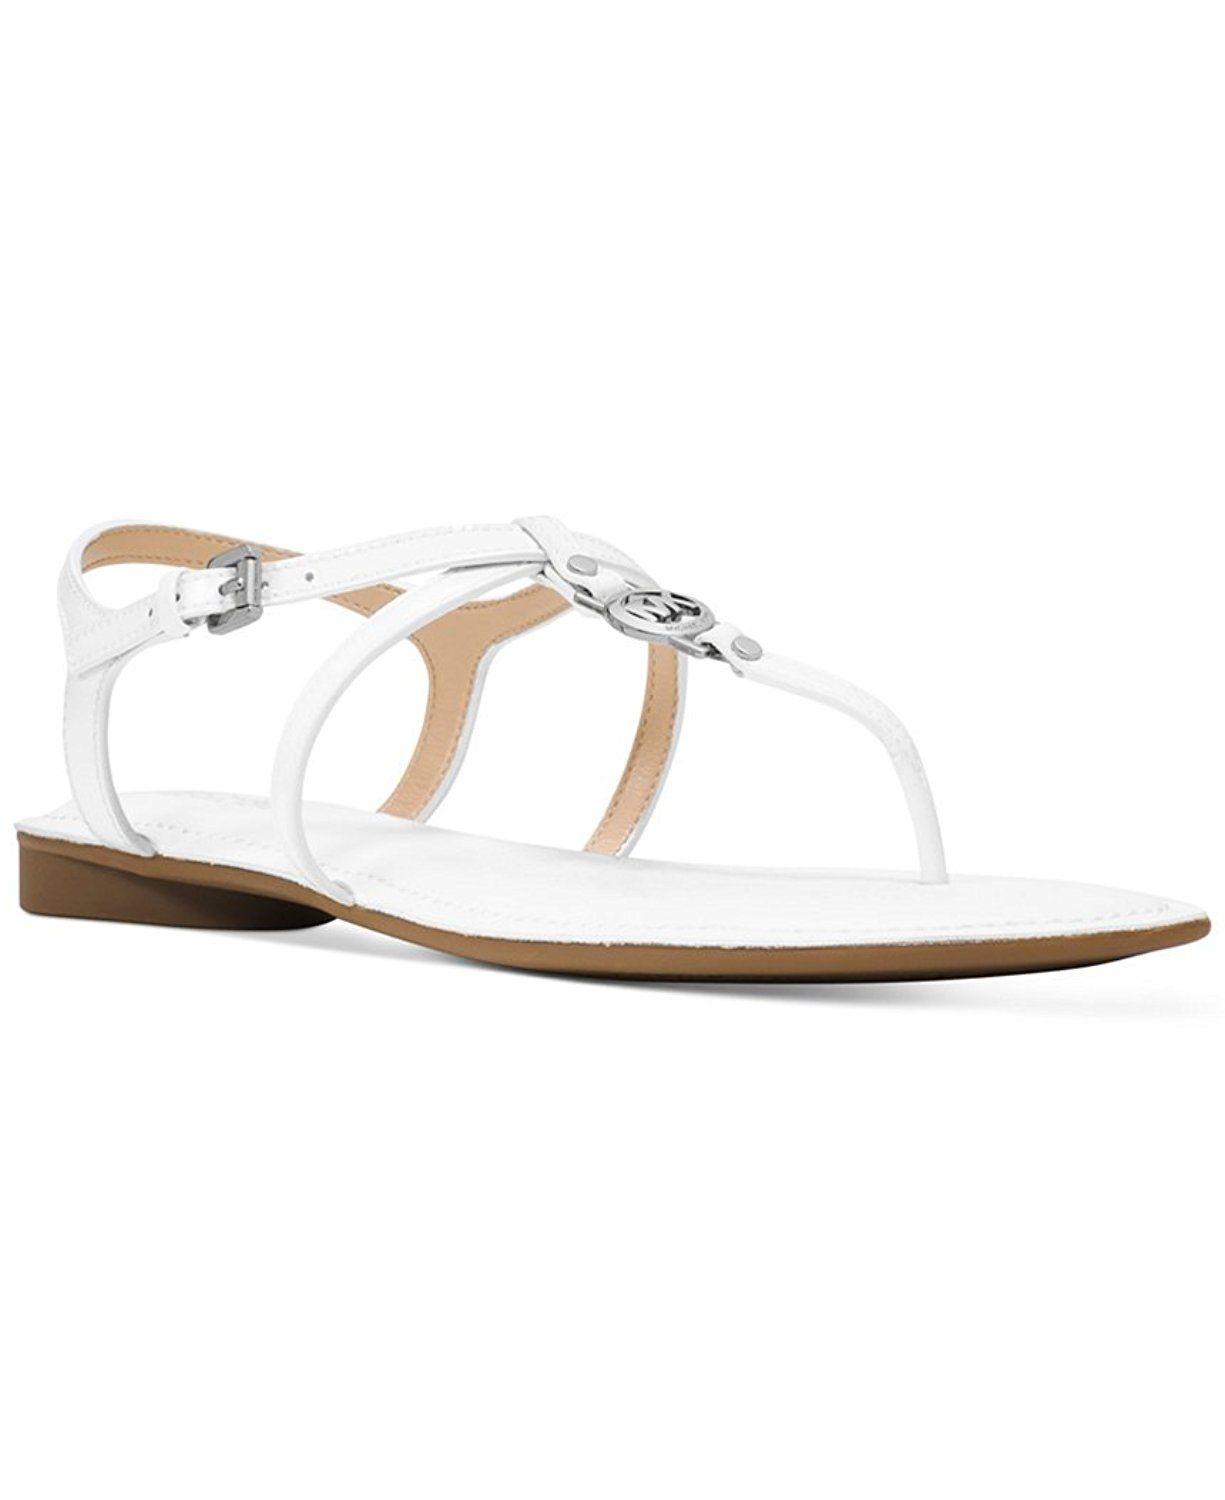 10b45740ab07 Michael Kors Bethany Sandal Optic White Patent Leather Flat Shoe Women size  5.5 M